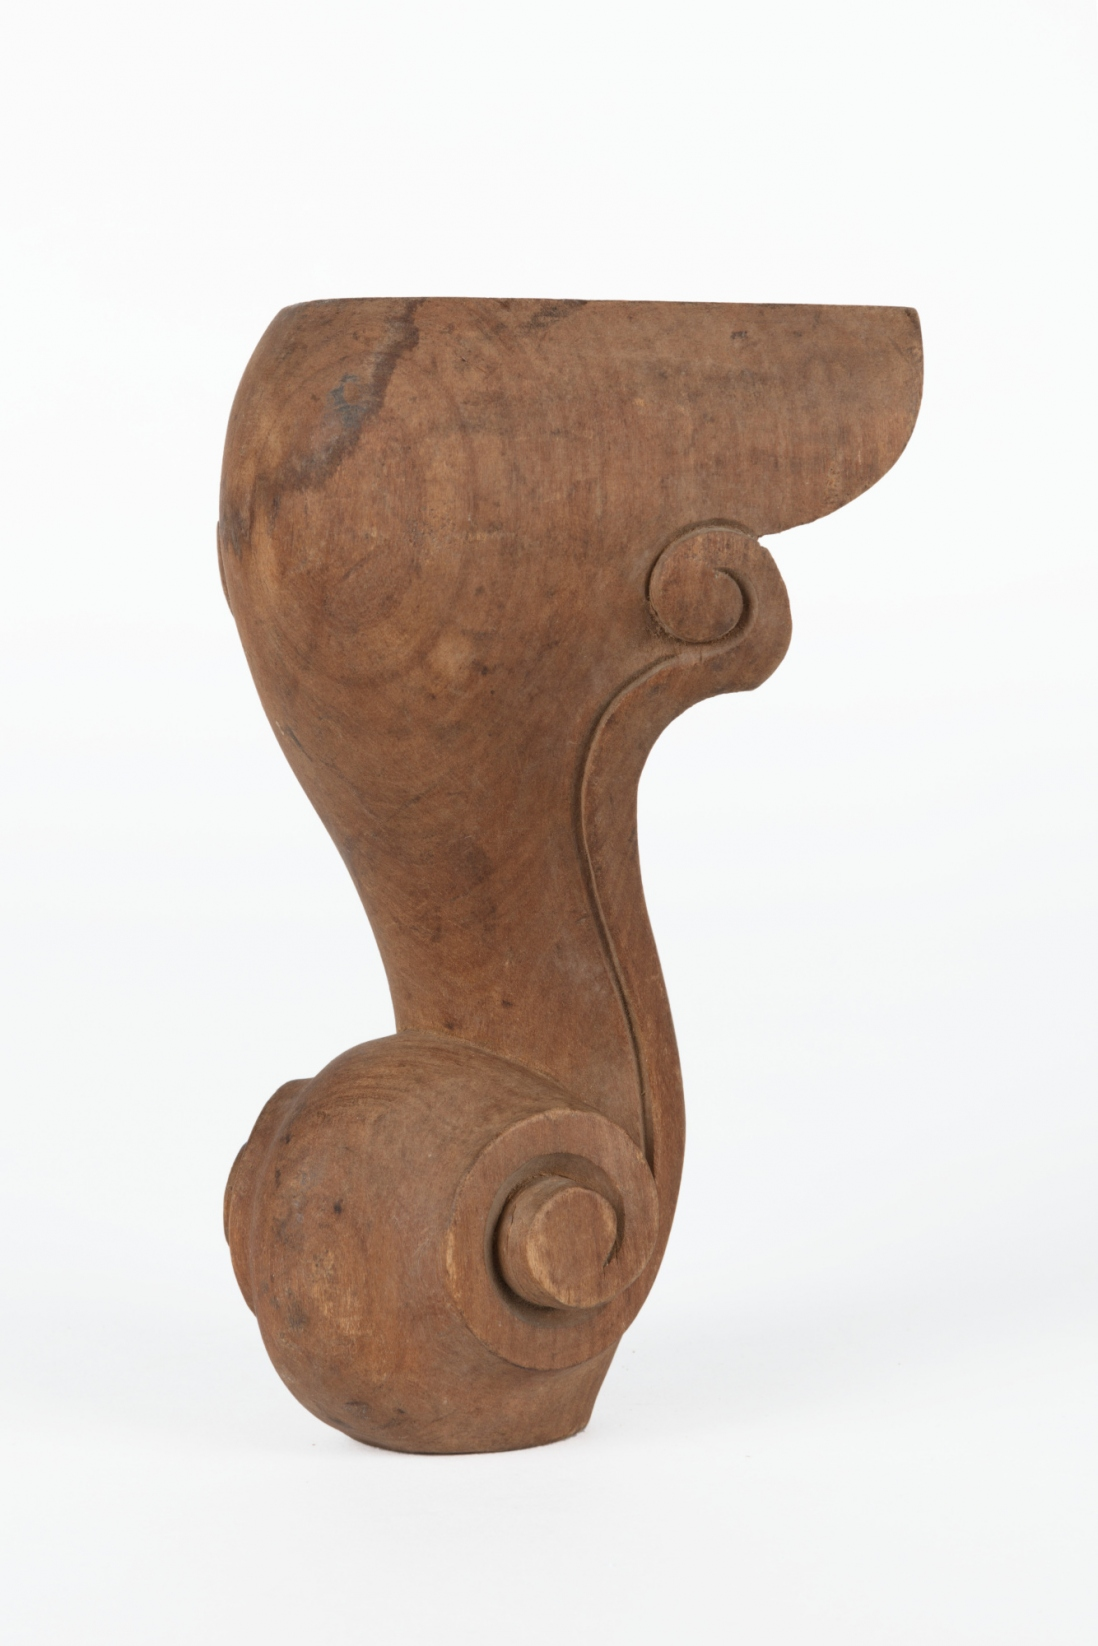 A carved timber furniture leg